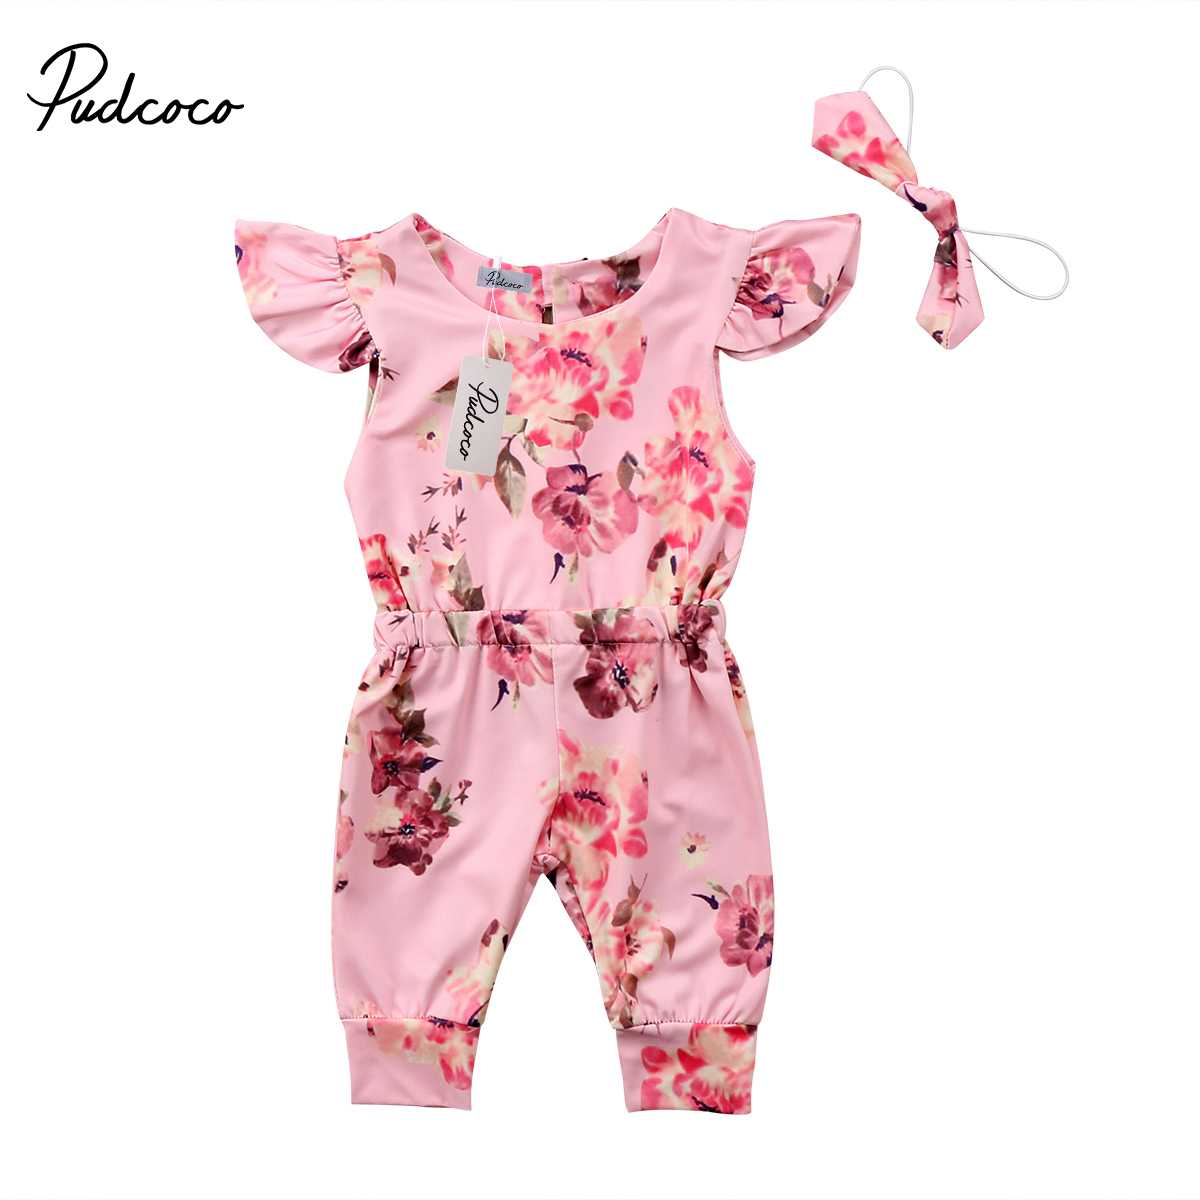 Pudcoco Toddler Infant Baby Girls Romper Floral Romper Sunsuit Summer Flying Sleeve Jumpsuit Cotton Clothes Outfit 1 set bass pegs 4 pcs quality double bass pegs 1 4 to 1 2 size bass parts double bass peg